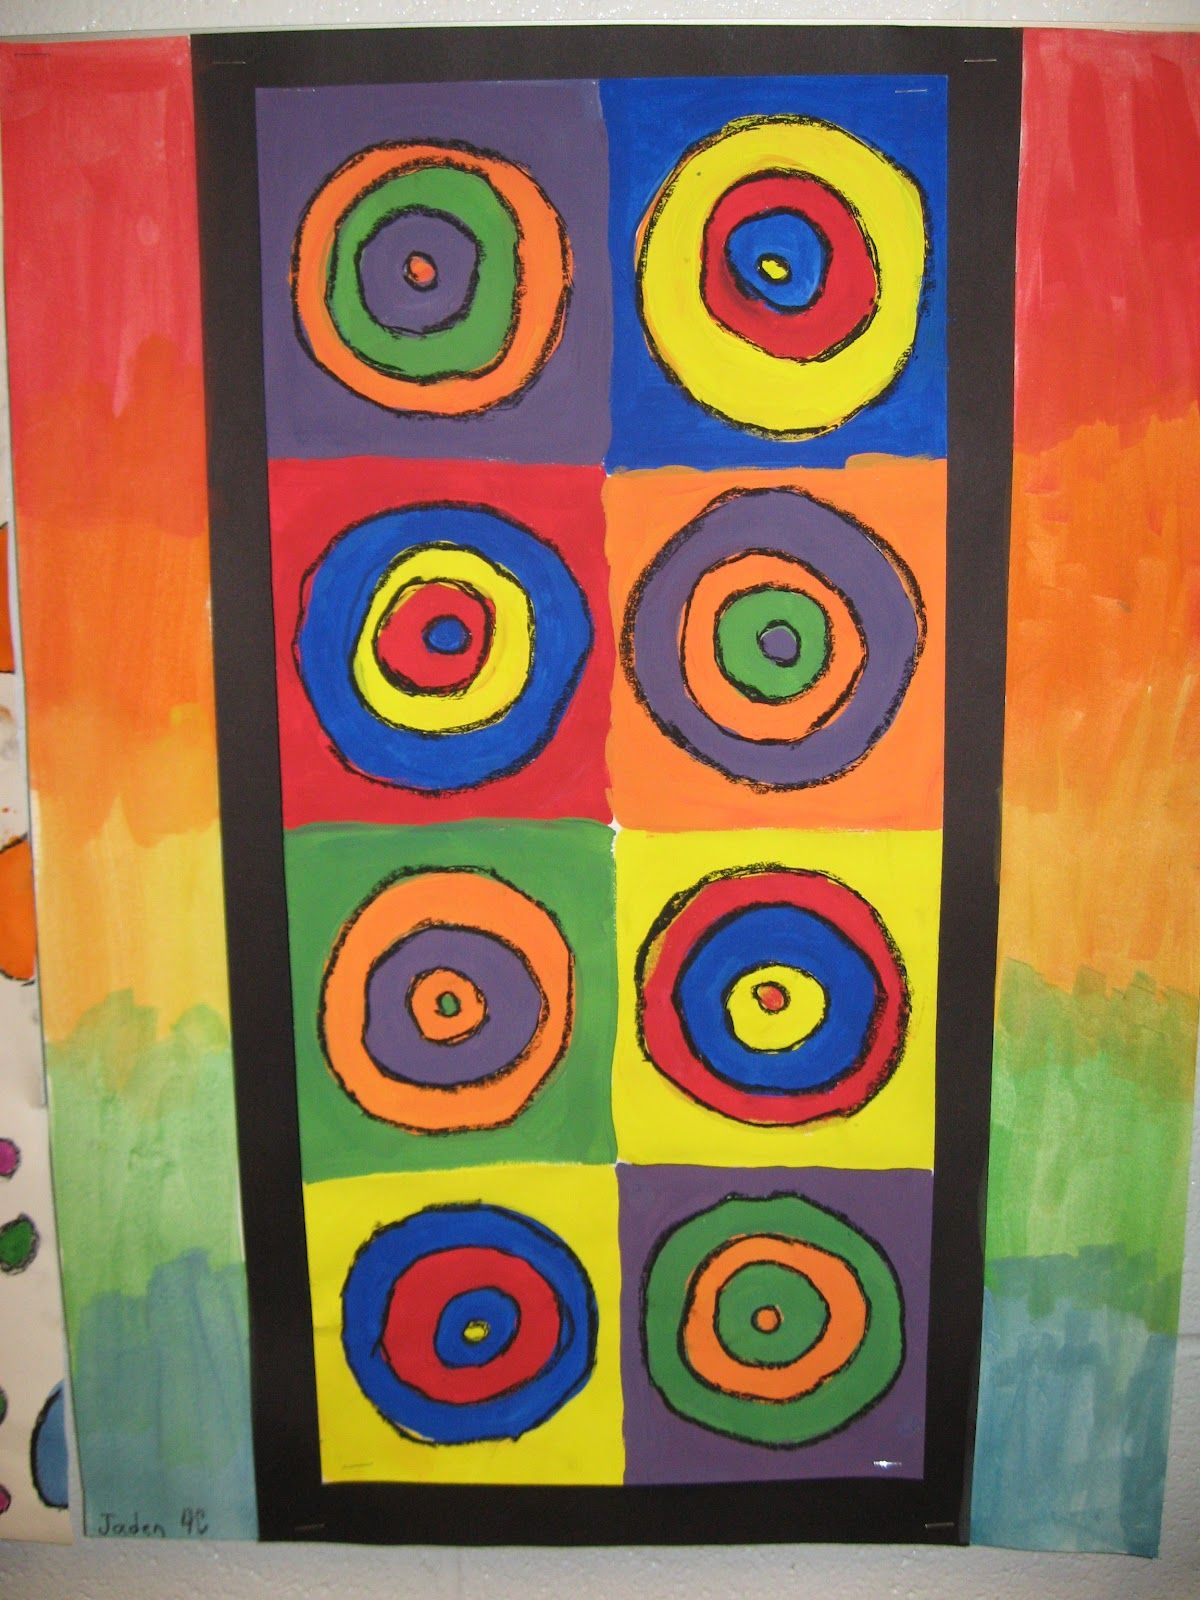 Jamestown Elementary Art Blog 4th Grade Art Based On The Abstract Style Of Wassily Kandinsky